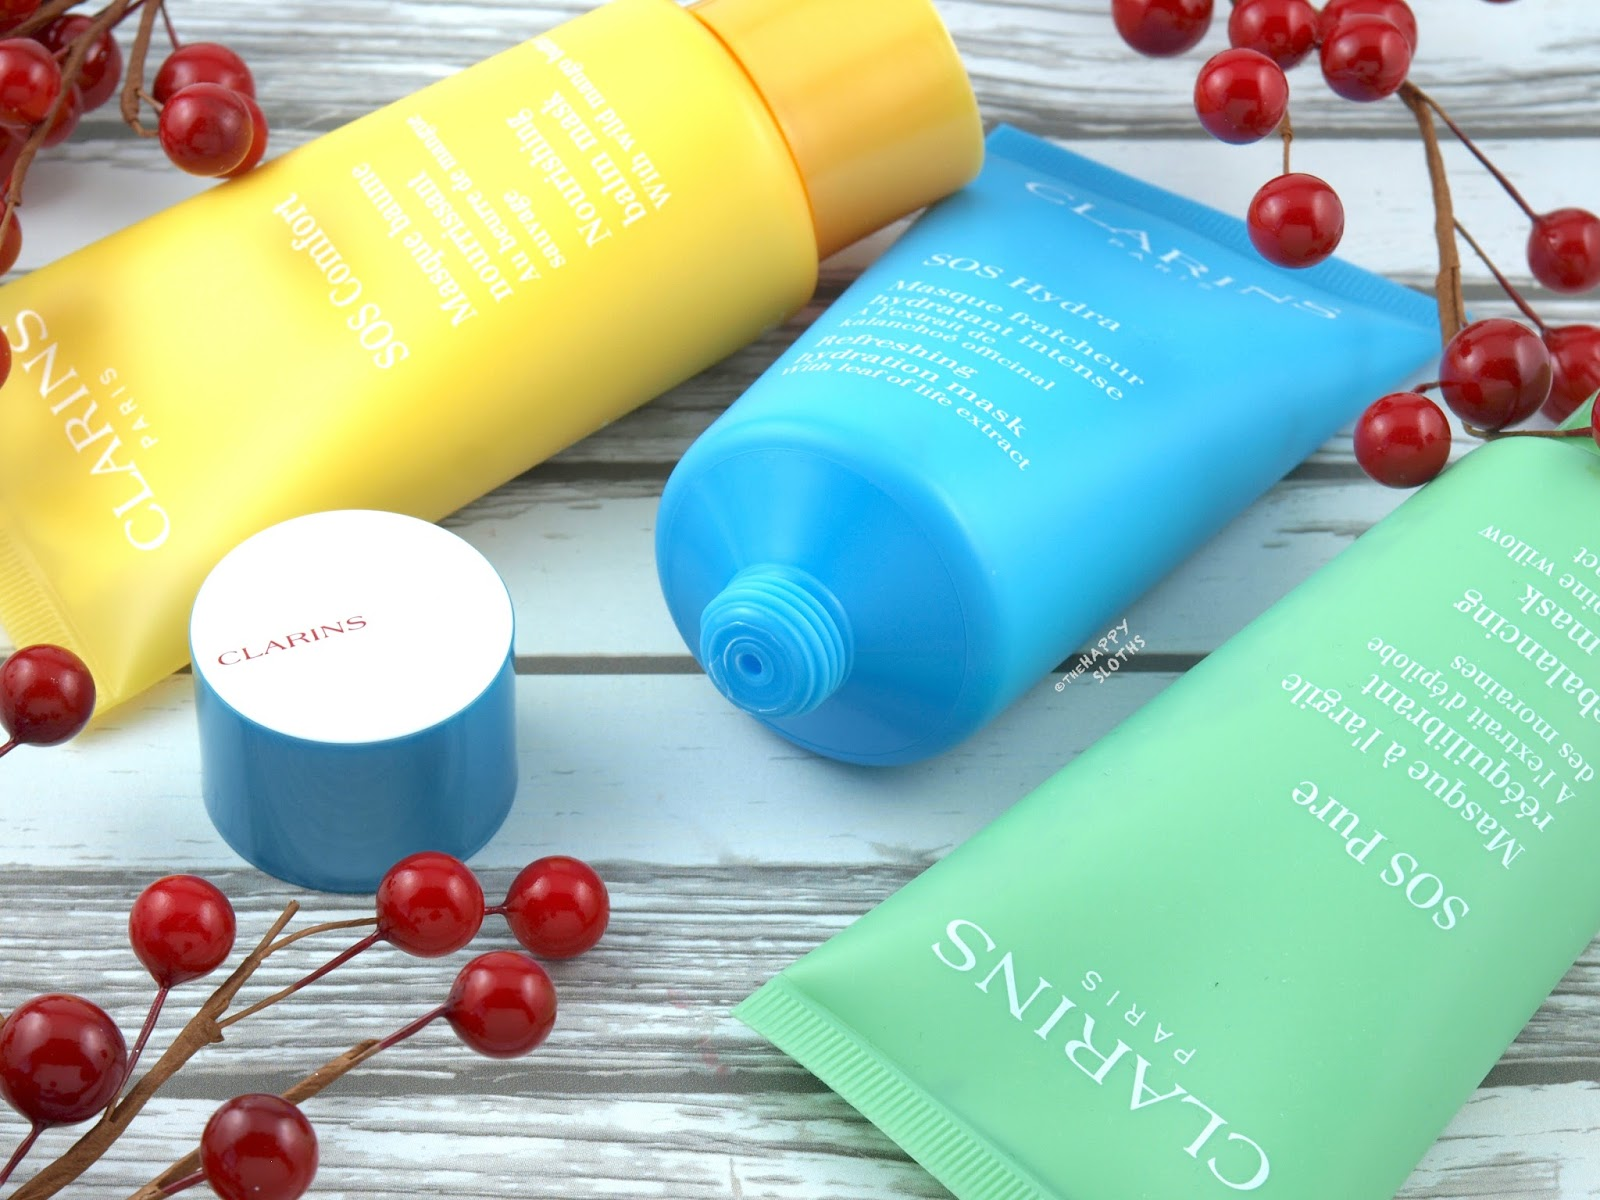 Clarins SOS Pure Mask | Clarins SOS Comfort Mask | Clarins SOS Hydra Mask: Review